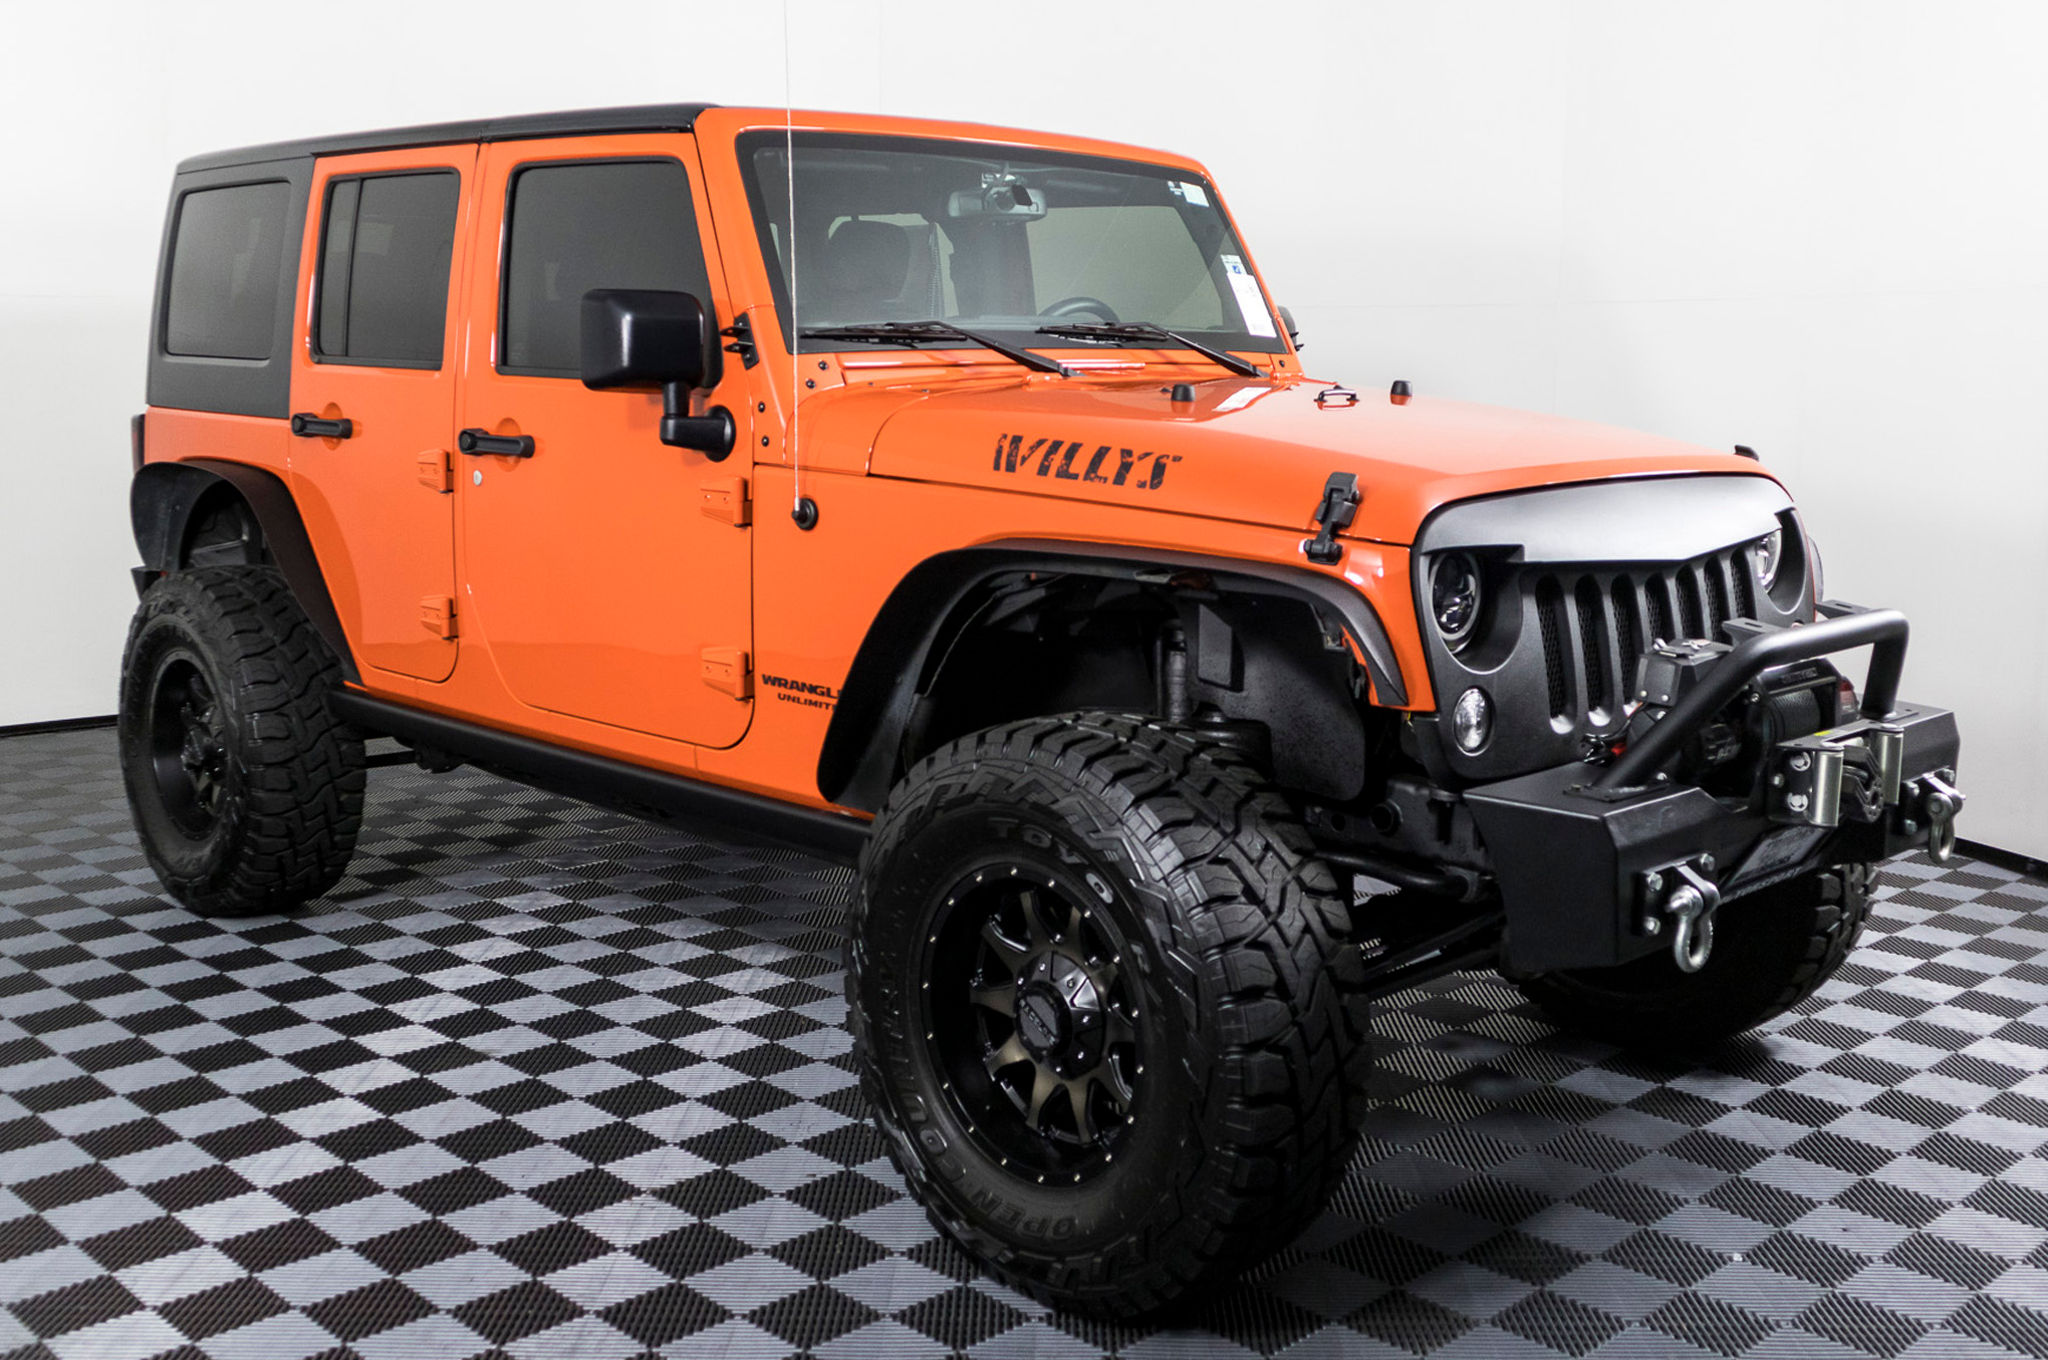 Used Lifted 2015 Jeep Wrangler Unlimited Willys 4x4 SUV For Sale